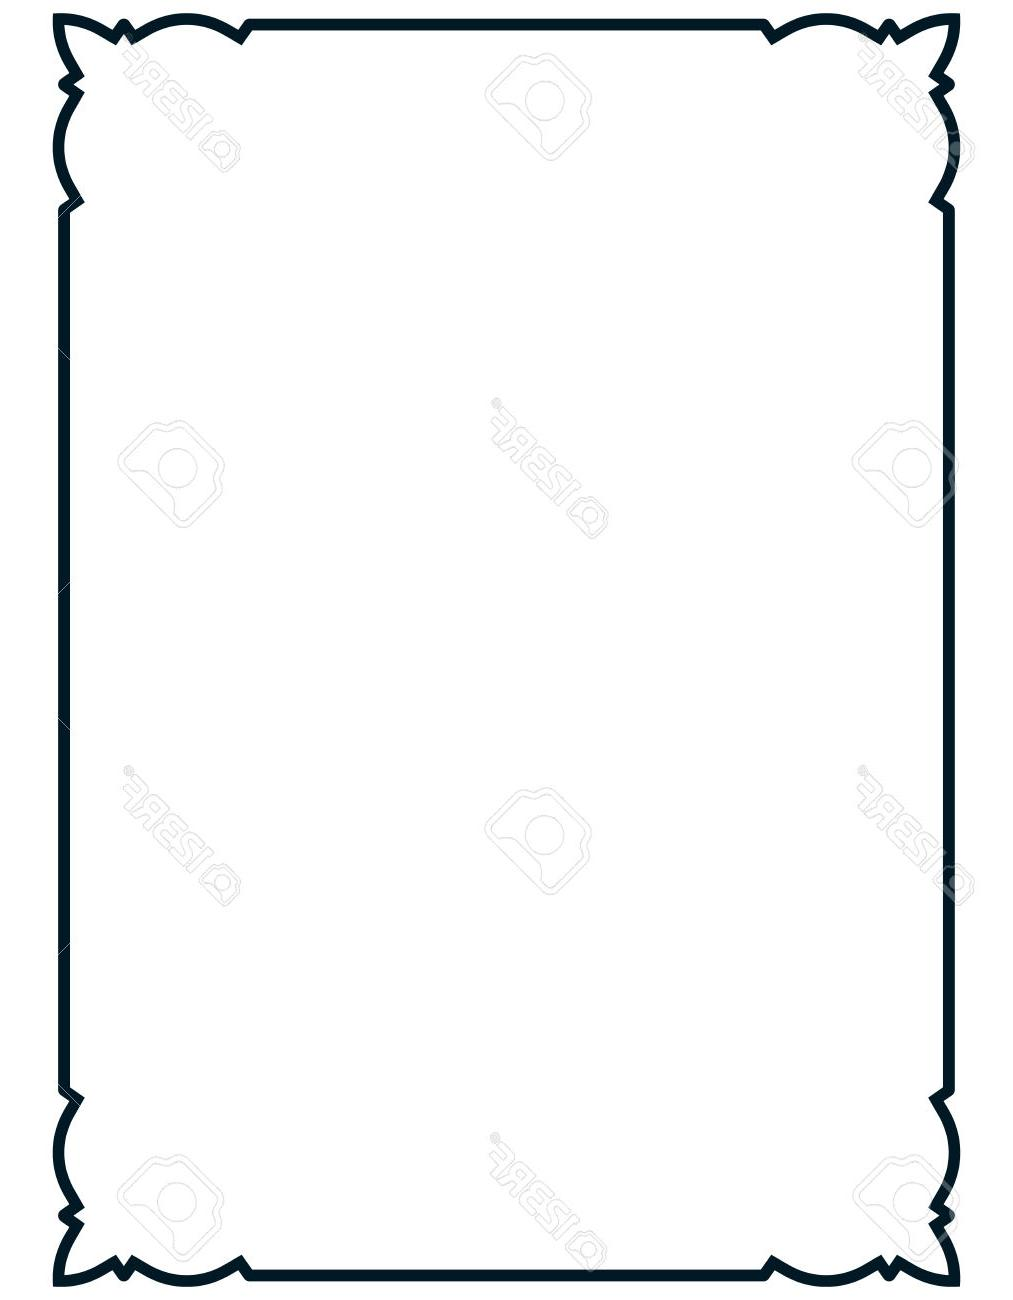 Printable page borders and border clip art for kids. free downloads in gif,  jpg, pdf, and png formats. ai and eps files also available. - Borders PNG HD